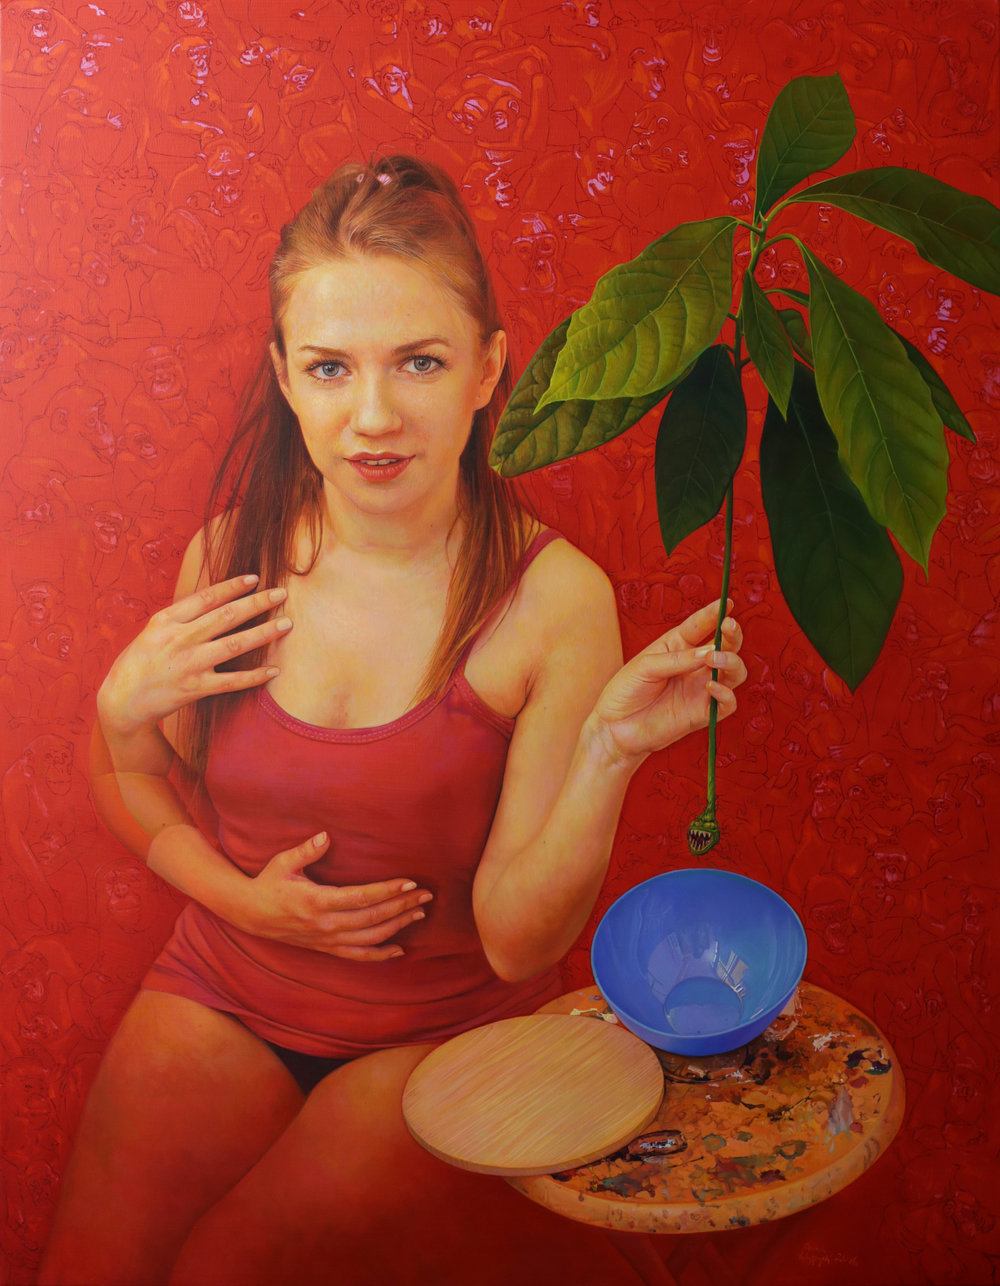 Anna Wypych  |   Red   |  Oil on canvas  |  35 ½ x 27 ½ inches or 90 x 70 cm